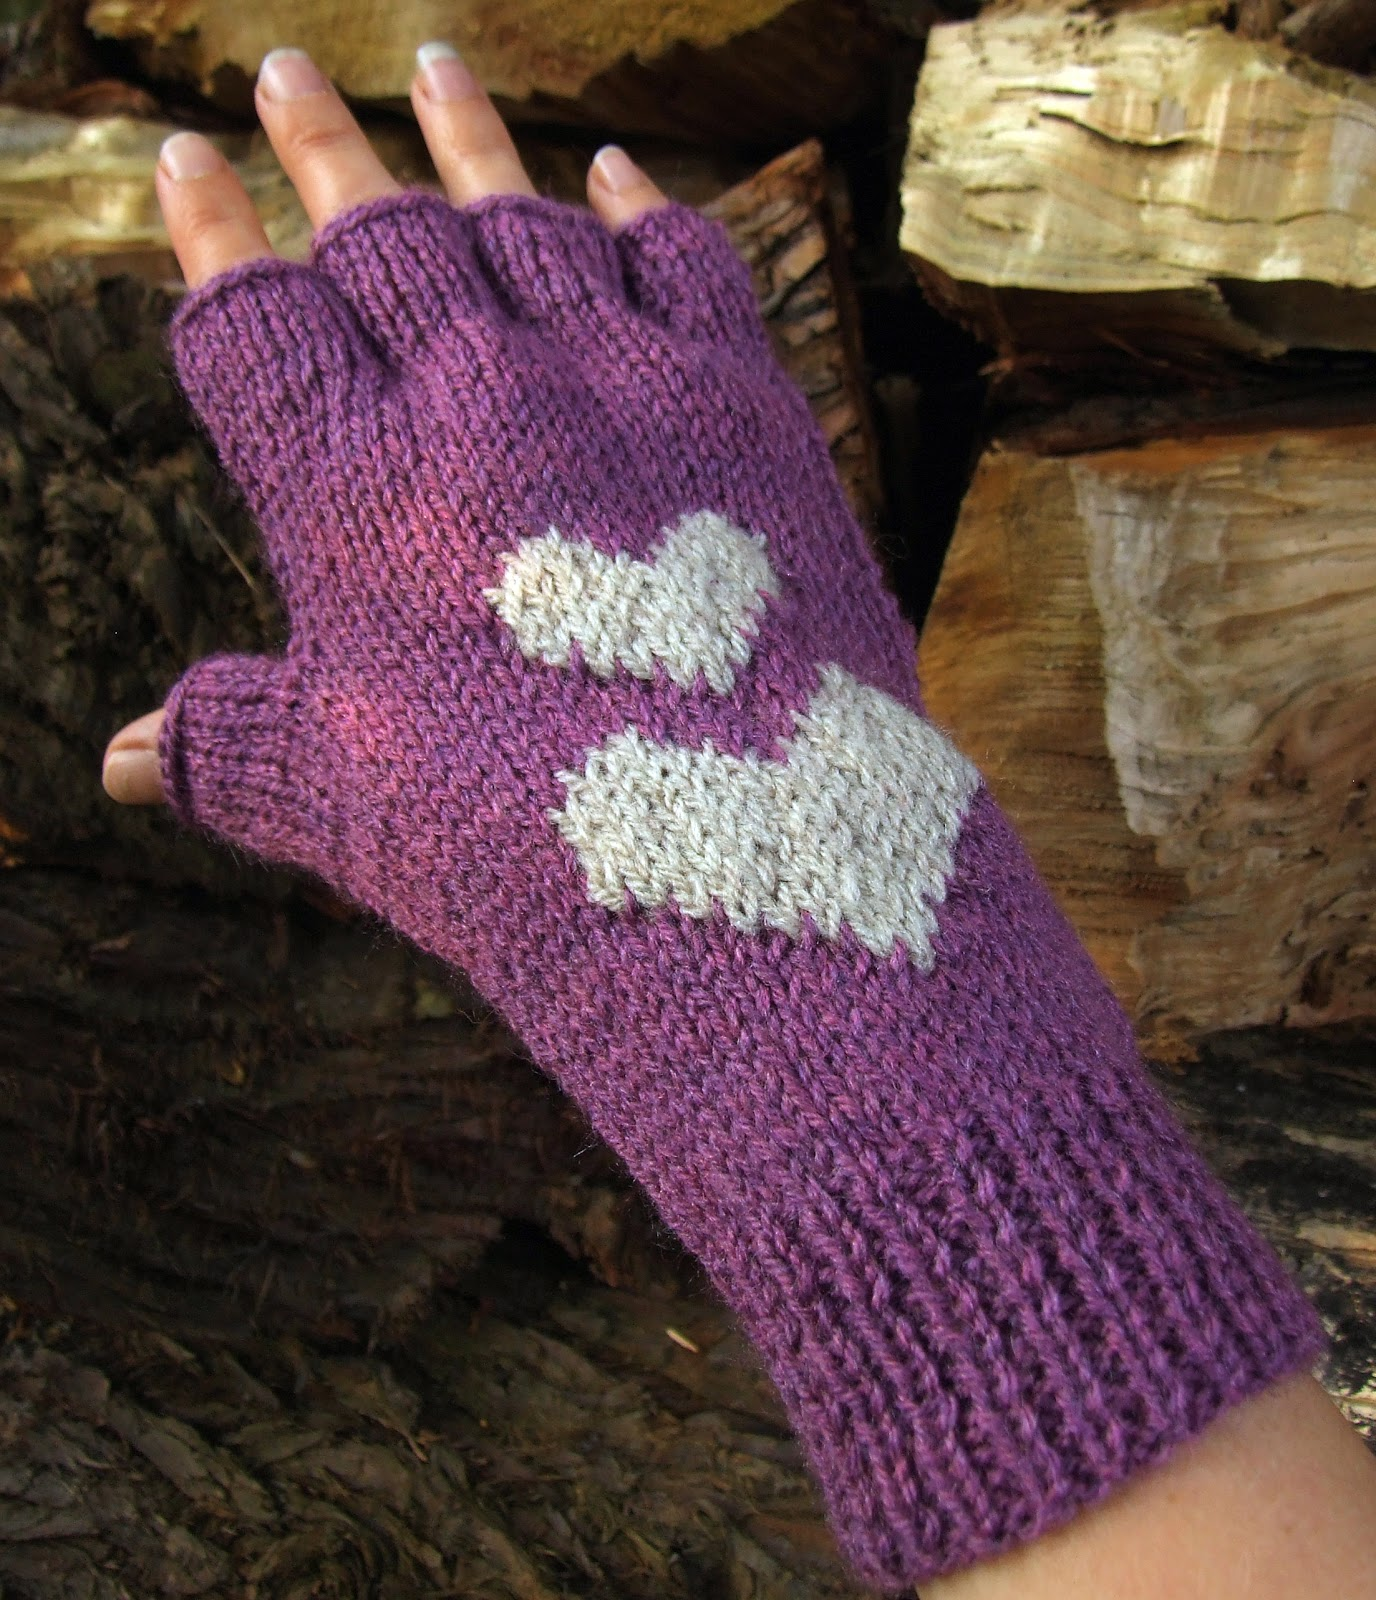 Knitting Pattern Of Gloves : Hearts Fingerless Gloves - Knitting Pattern - WoolnHook by Leonie Morgan